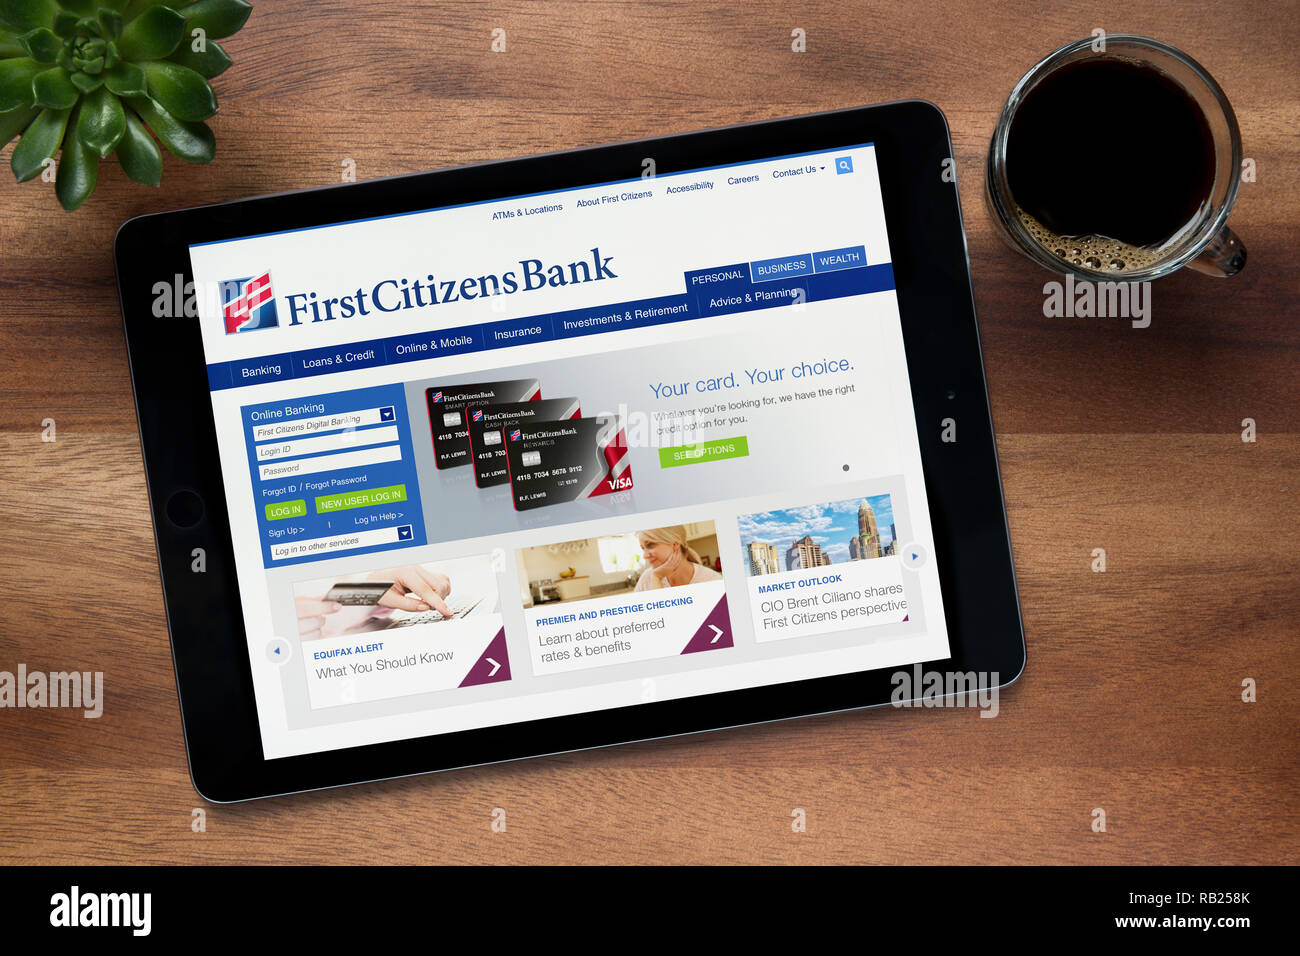 The website of First Citizens Bank is seen on an iPad tablet